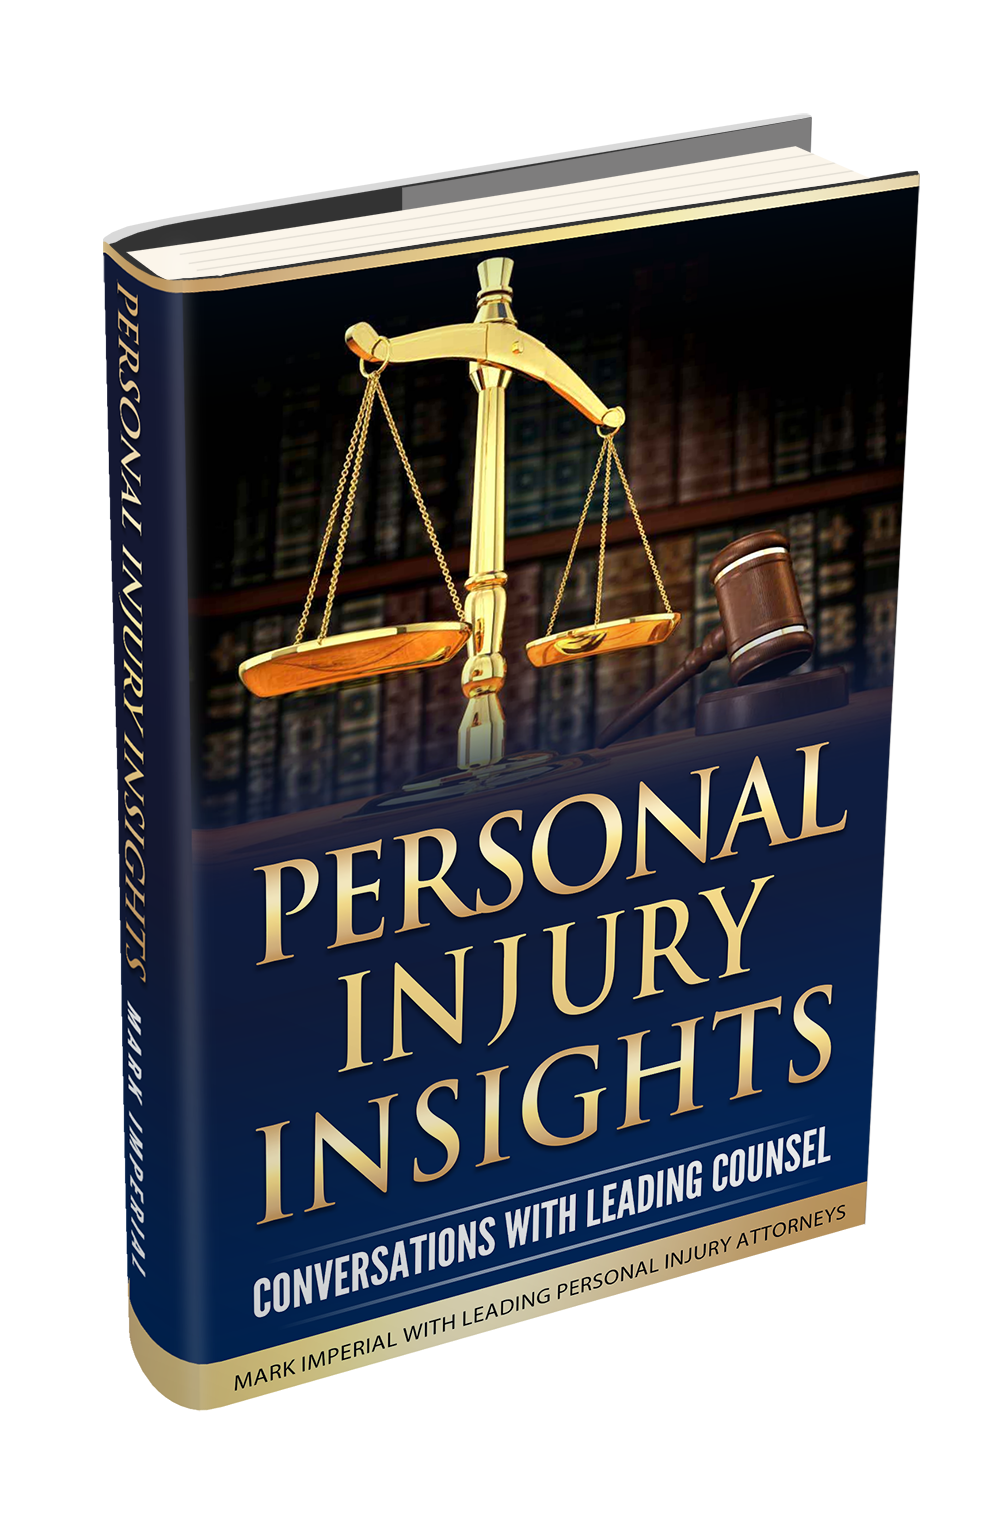 """Remarkable Press Launches National Search For Personal Injury Trial Attorneys To Contribute Tips For A New Book Titled """"Personal Injury Insights"""" To Benefit Charity"""